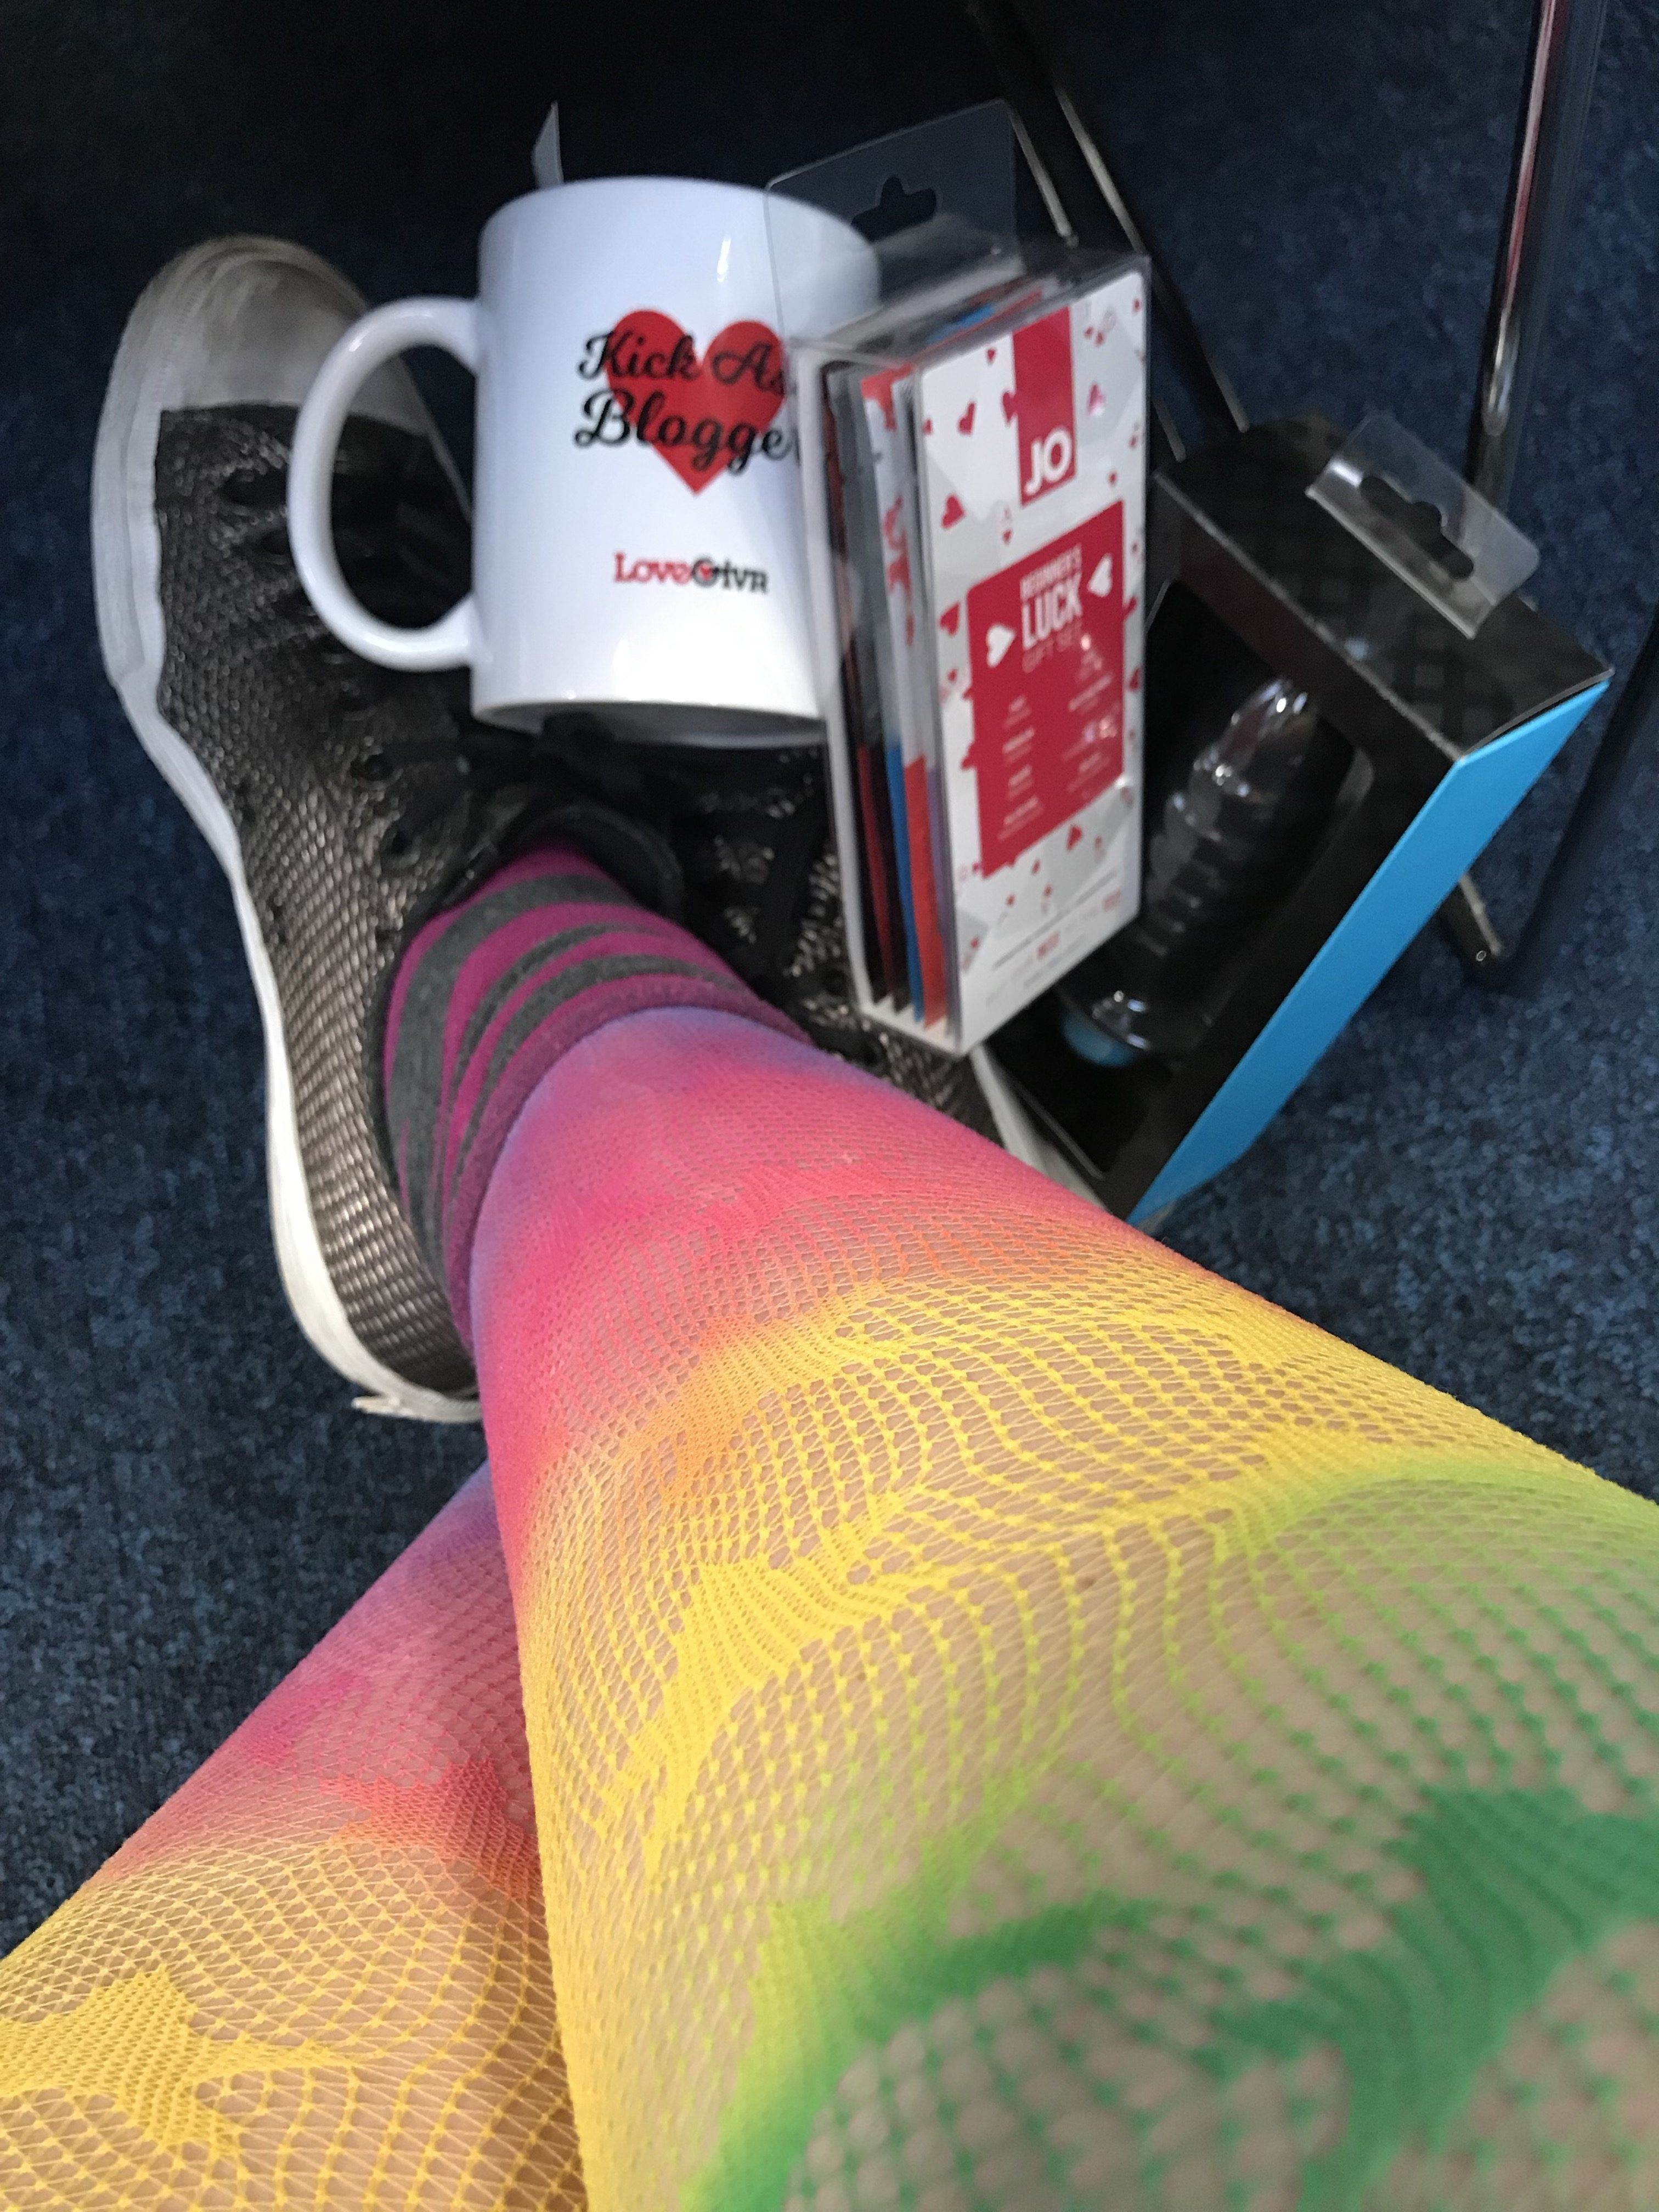 The bottom of my legs with colorful rainbow fishnet tights and converse sneakers. On my feet are a sex bloggers mug, a packet of use samples and a rather large butt plug I won at Eroticon